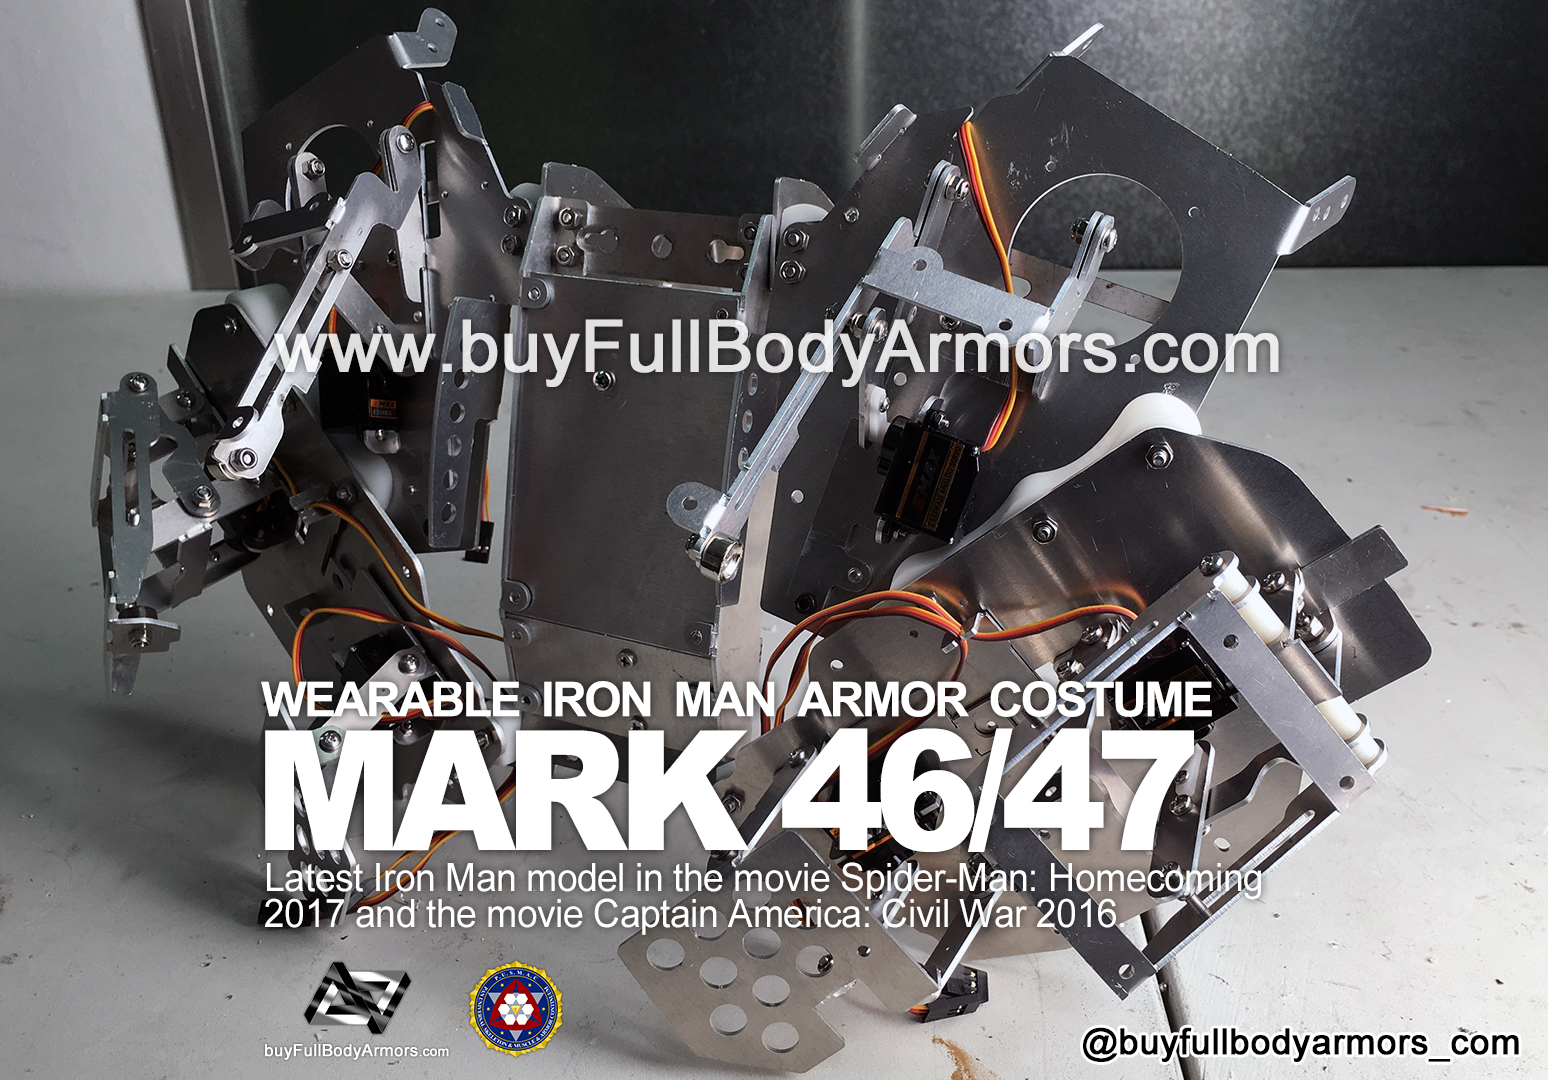 The Motorized Open-Close Mechanical Structure of the Back Armor - the Wearable Iron Man Mark 47 / 46 Armor Costume Suit prototype 3